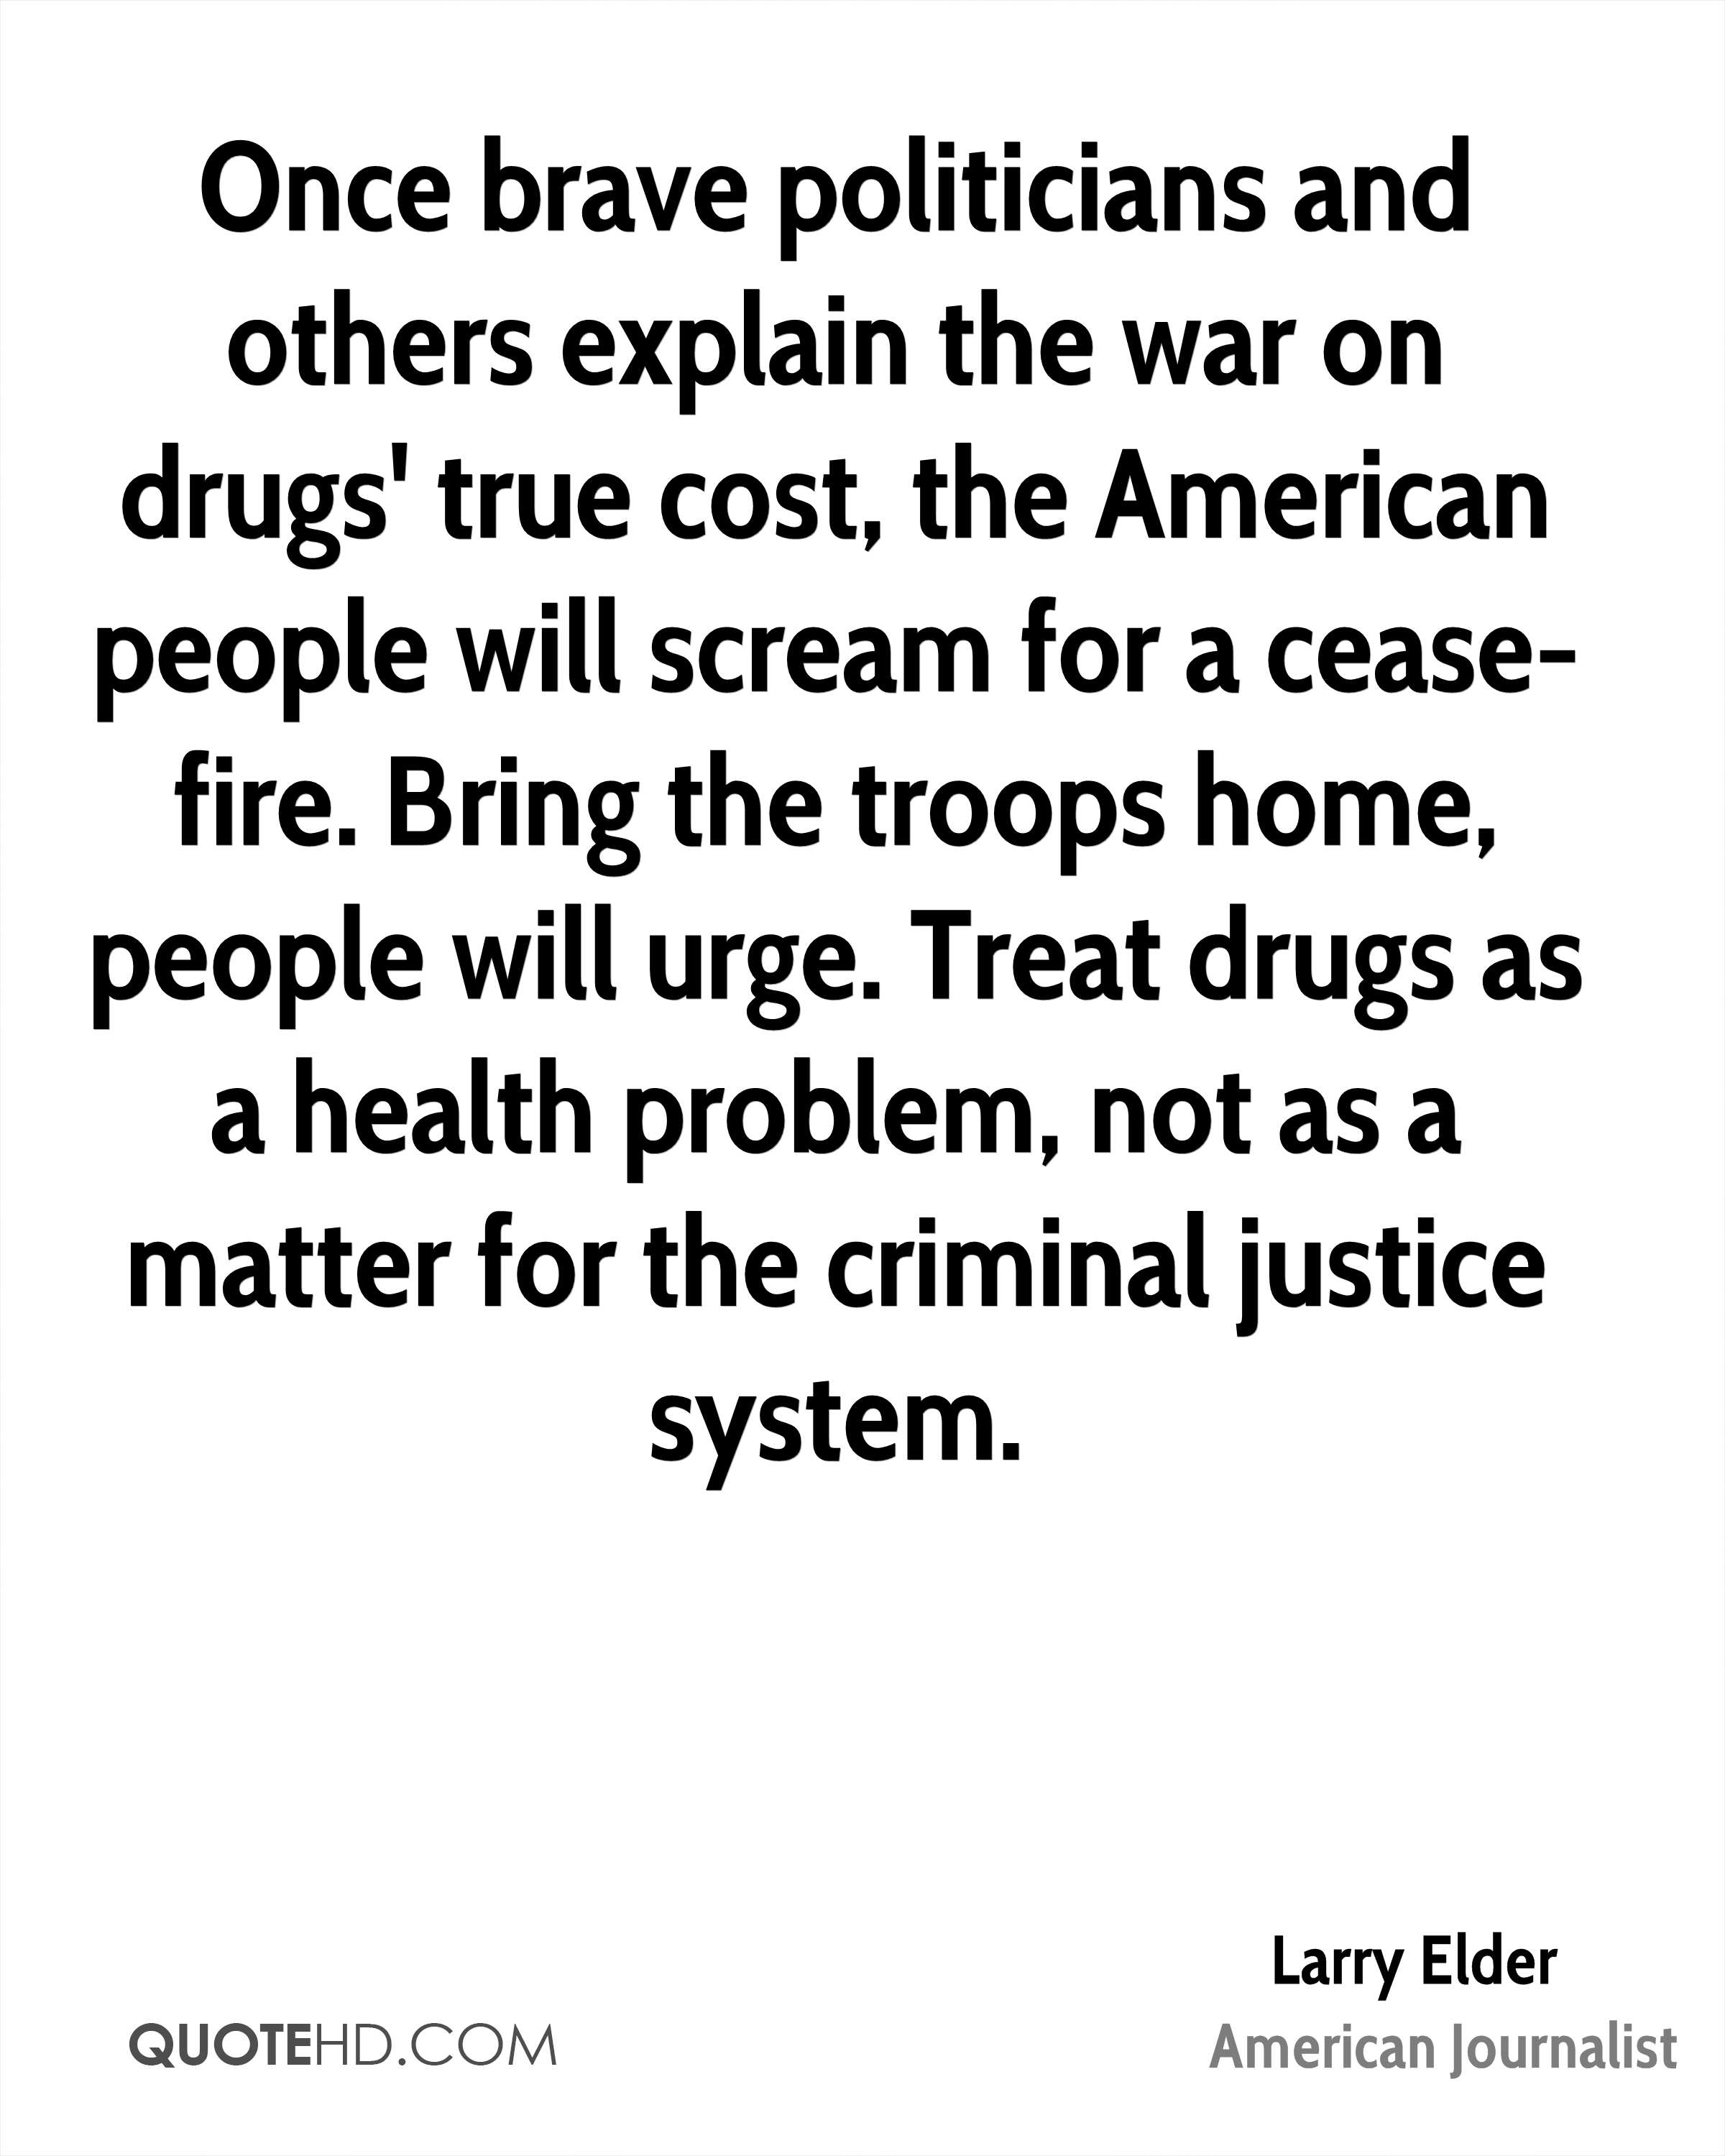 Once brave politicians and others explain the war on drugs' true cost, the American people will scream for a cease-fire. Bring the troops home, people will urge. Treat drugs as a health problem, not as a matter for the criminal justice system.